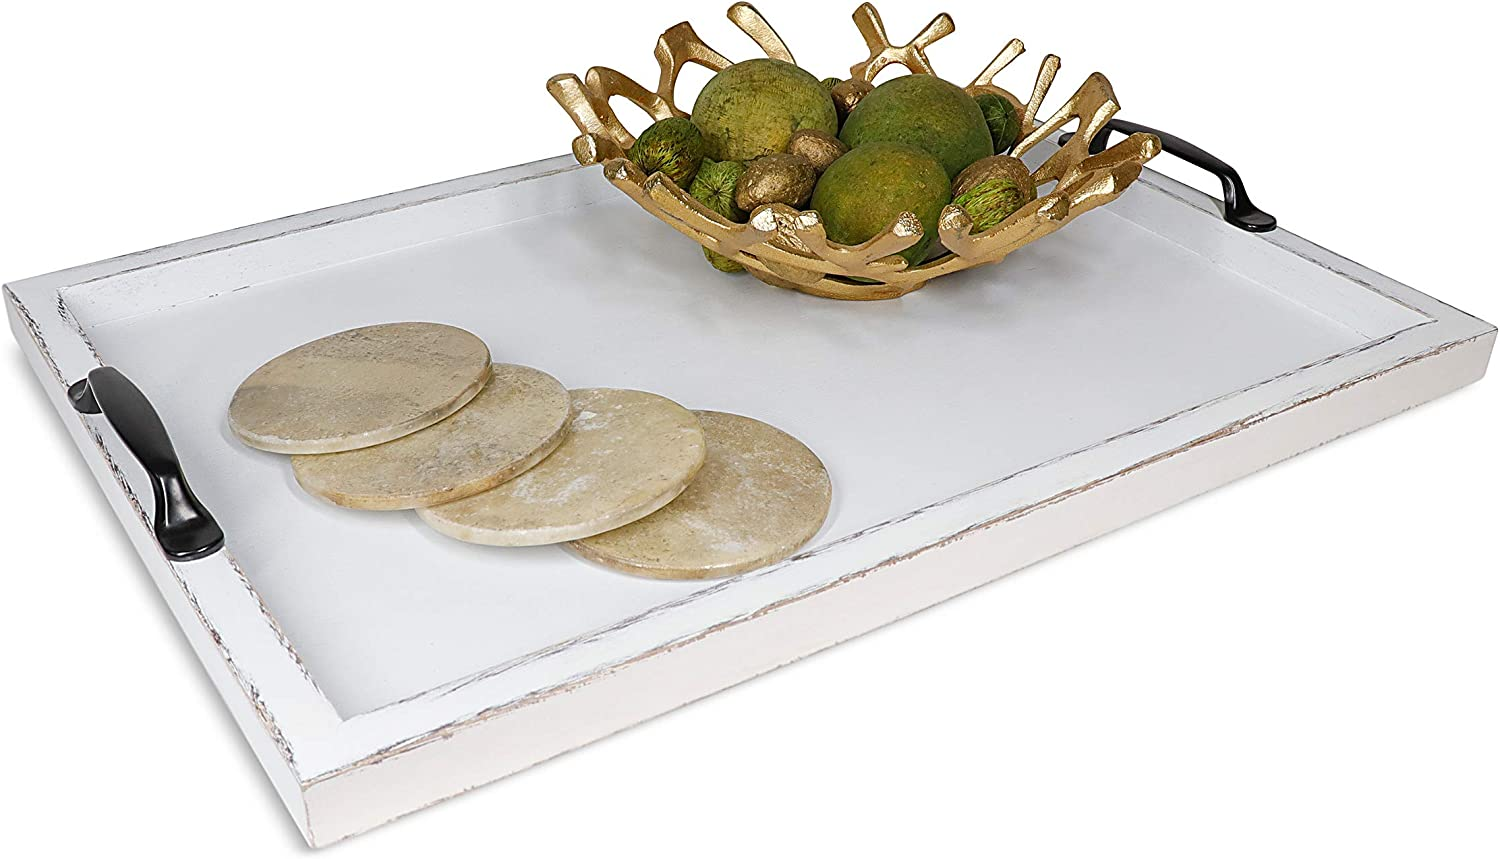 Large Wood Ottoman Serving Tray w/Handles - Decorative Centerpiece - Coffee Table Decor - Dinner/Food/Bar Trays - Modern Dining Room/Living/Kitchen Server centerpieces - Extra Large (White)